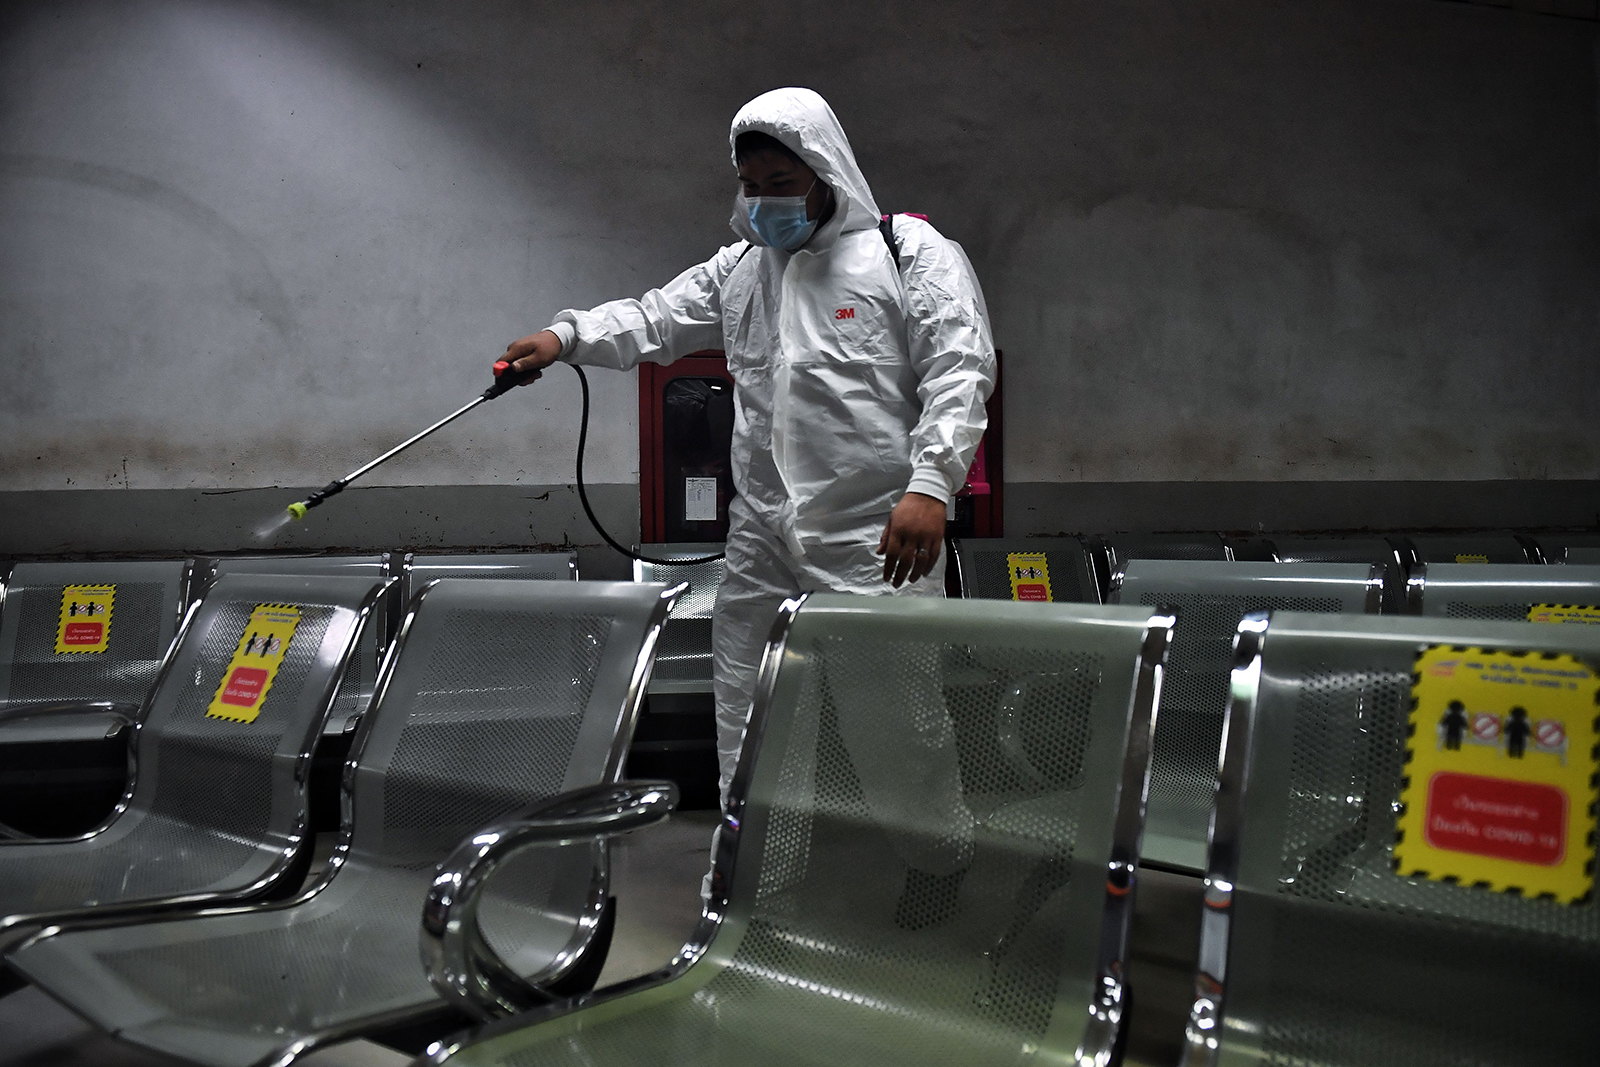 A man sprays disinfectant on seats inside a waiting room at Mo Chit Bus Terminal in Bangkok on January 6.